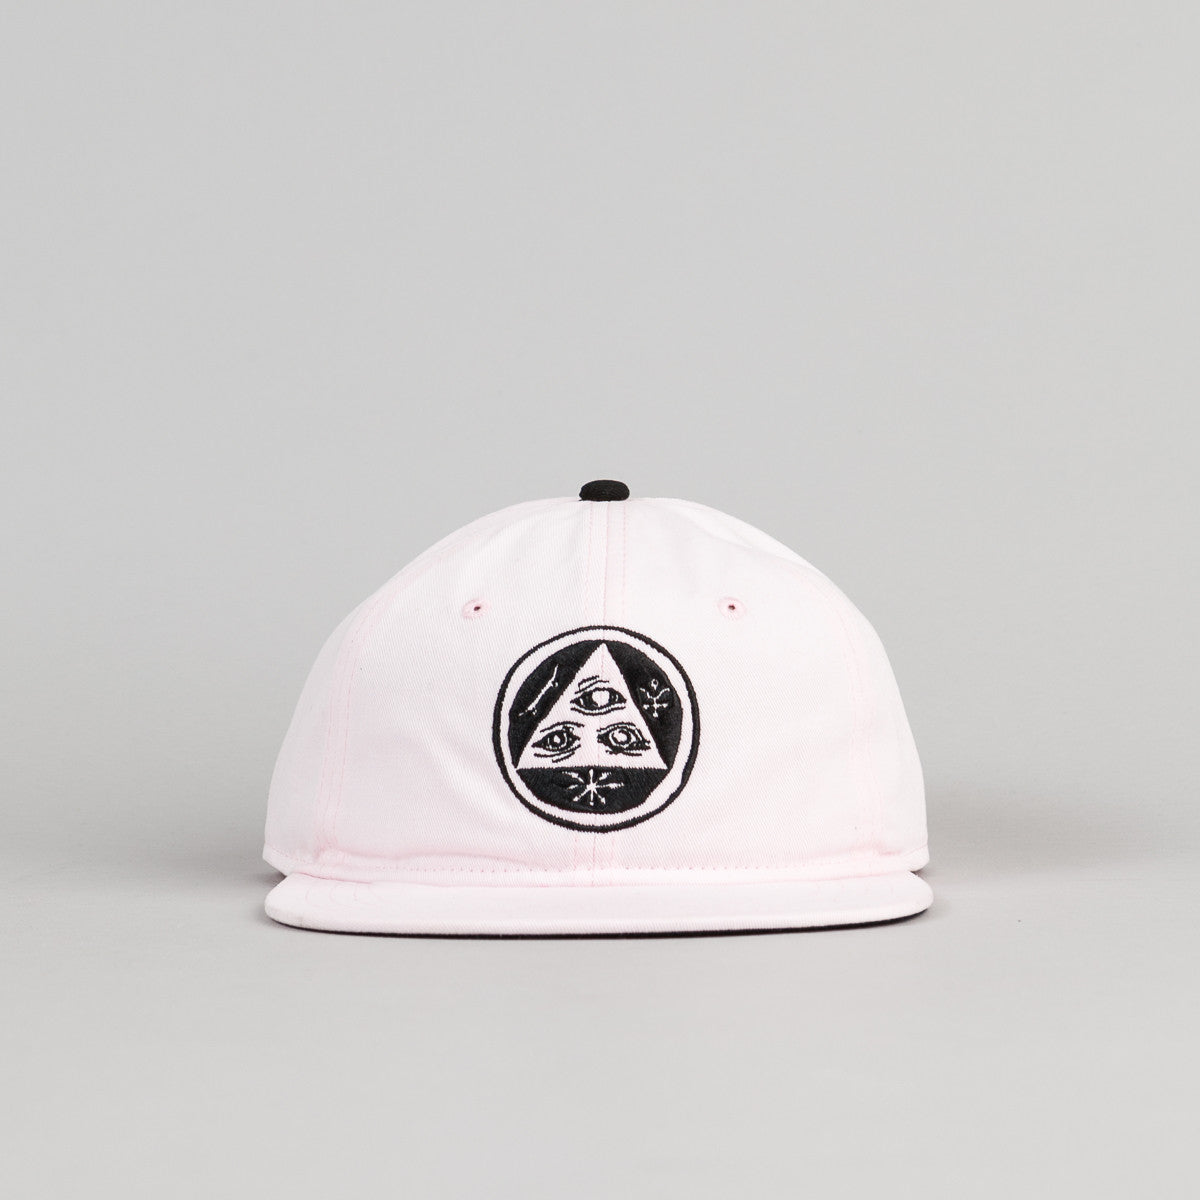 Welcome Skateboards Talisman Unstructured Snapback Cap - Pink / Black